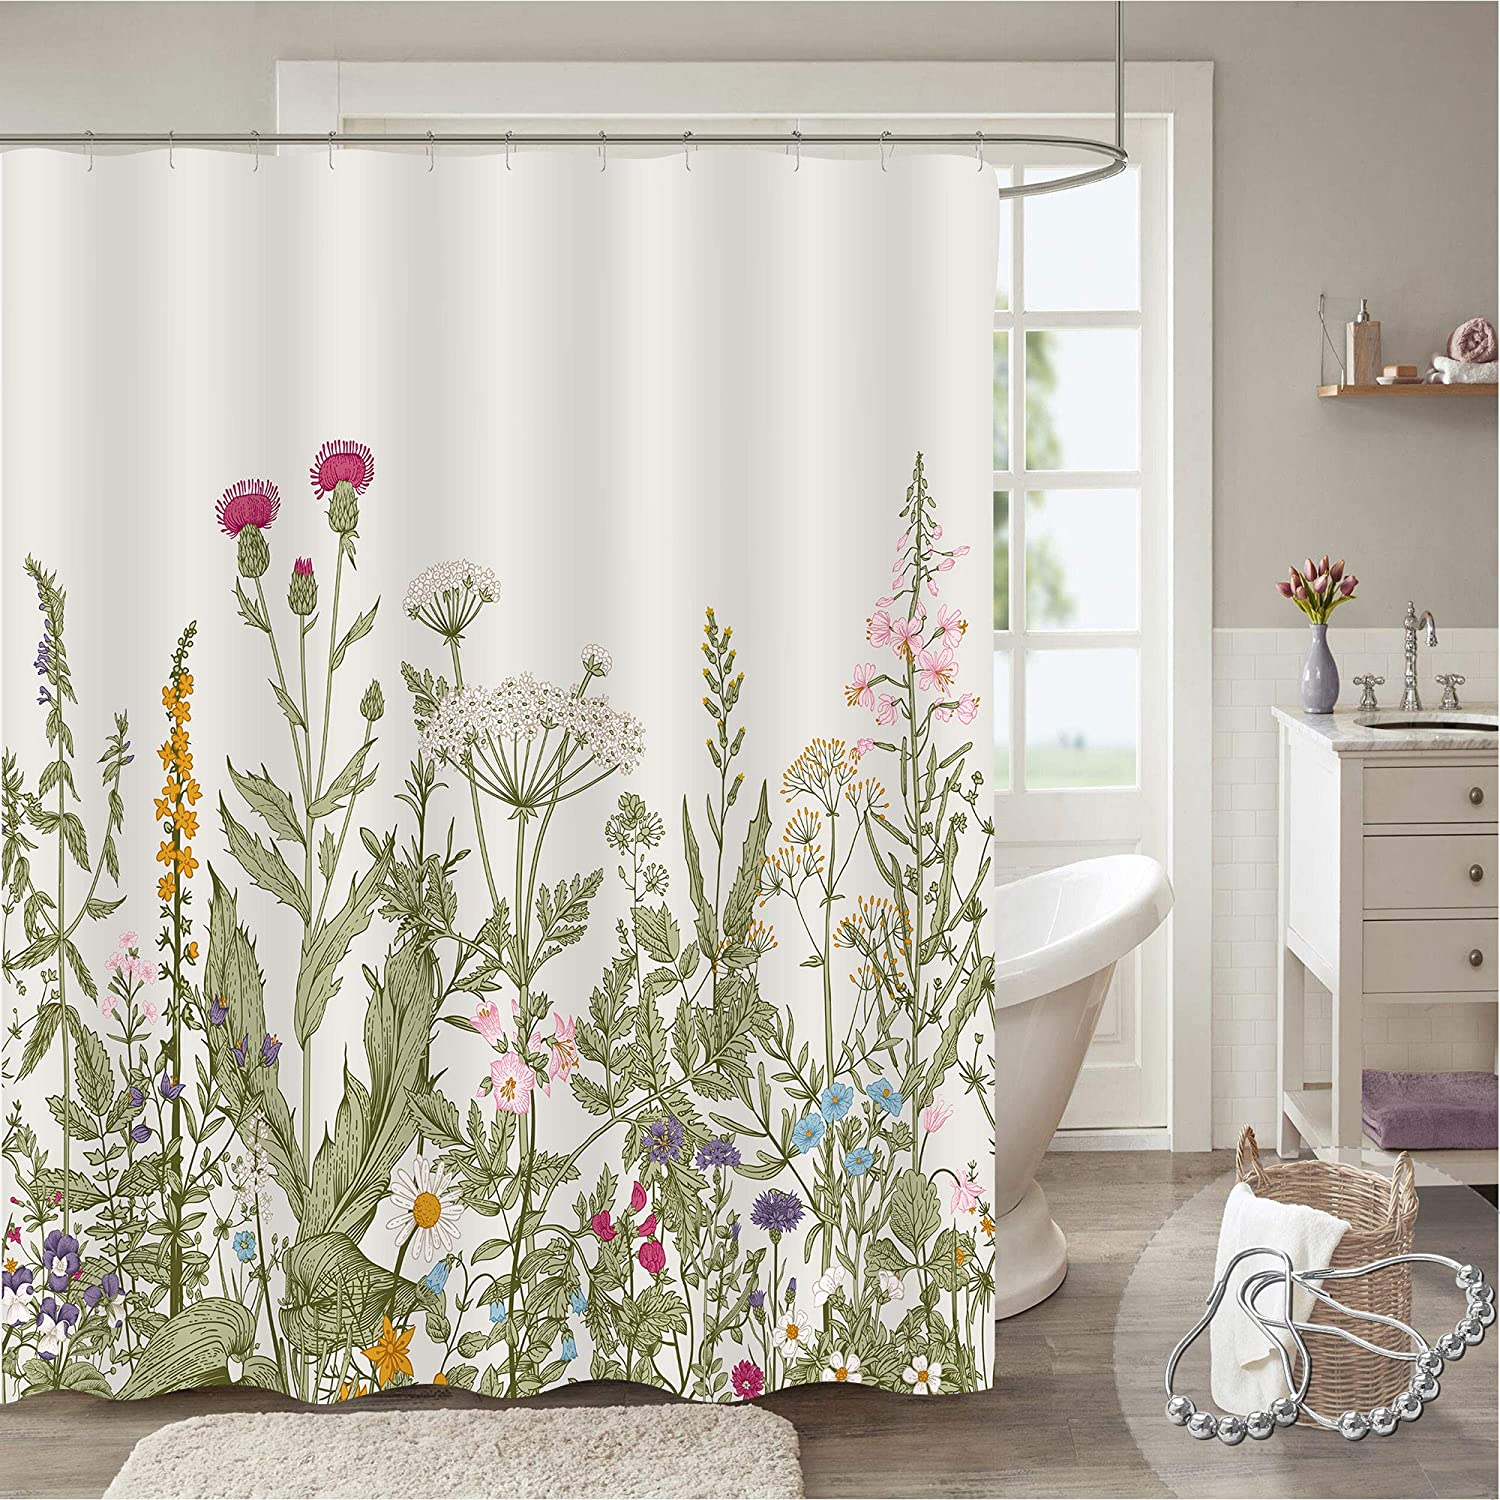 Gibelle Extra Wide supreme Shower Curtain Price reduction Tub Wrap Around for Clawfoot